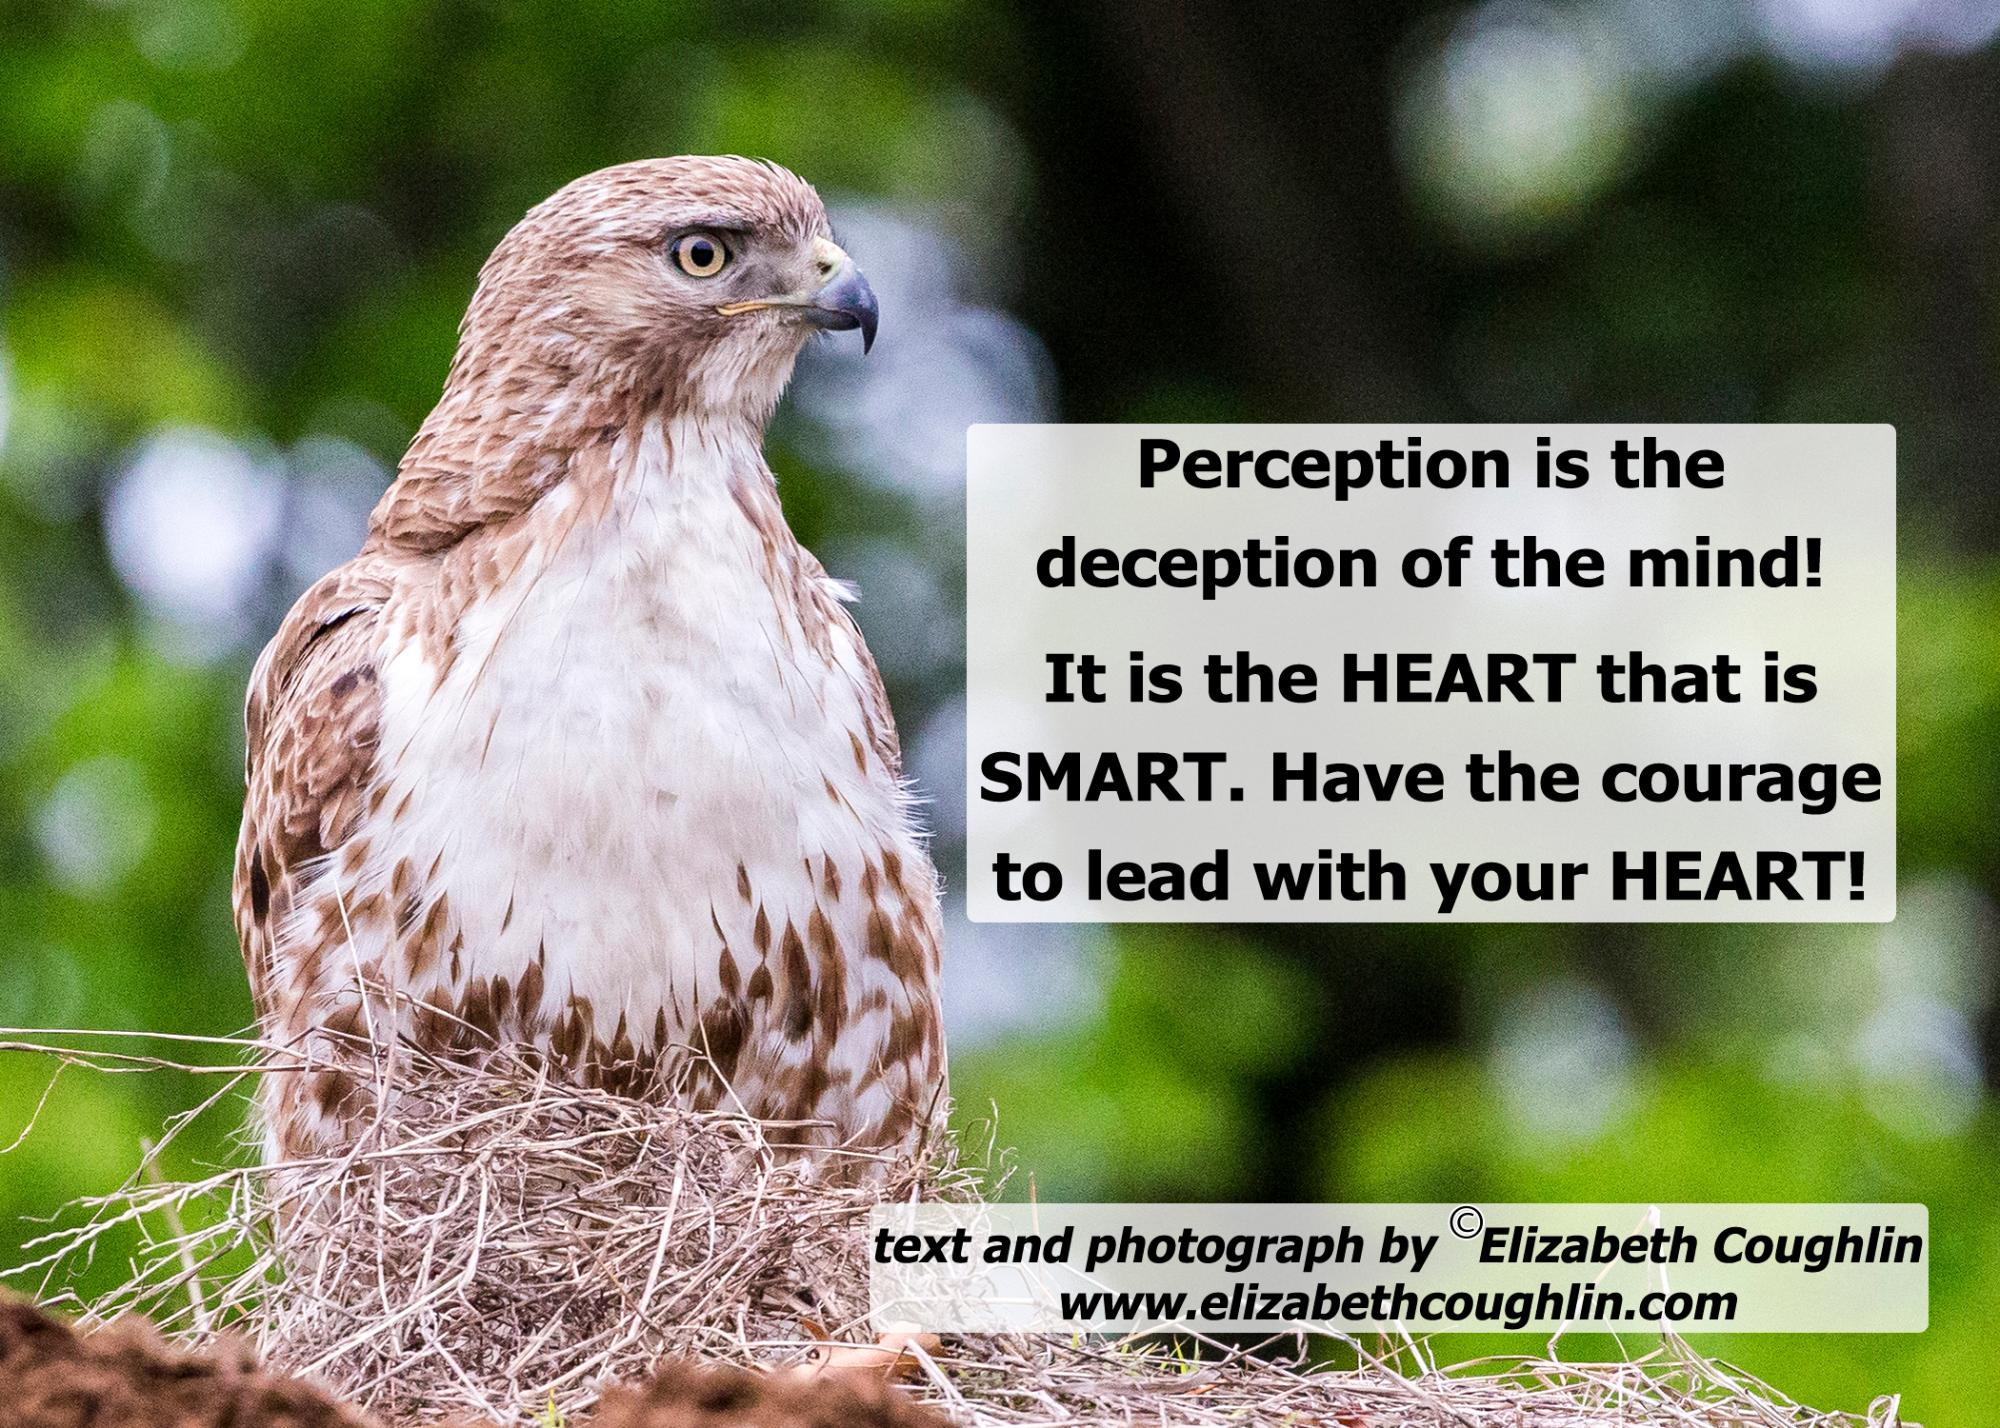 Hawk_Perception21987.jpg